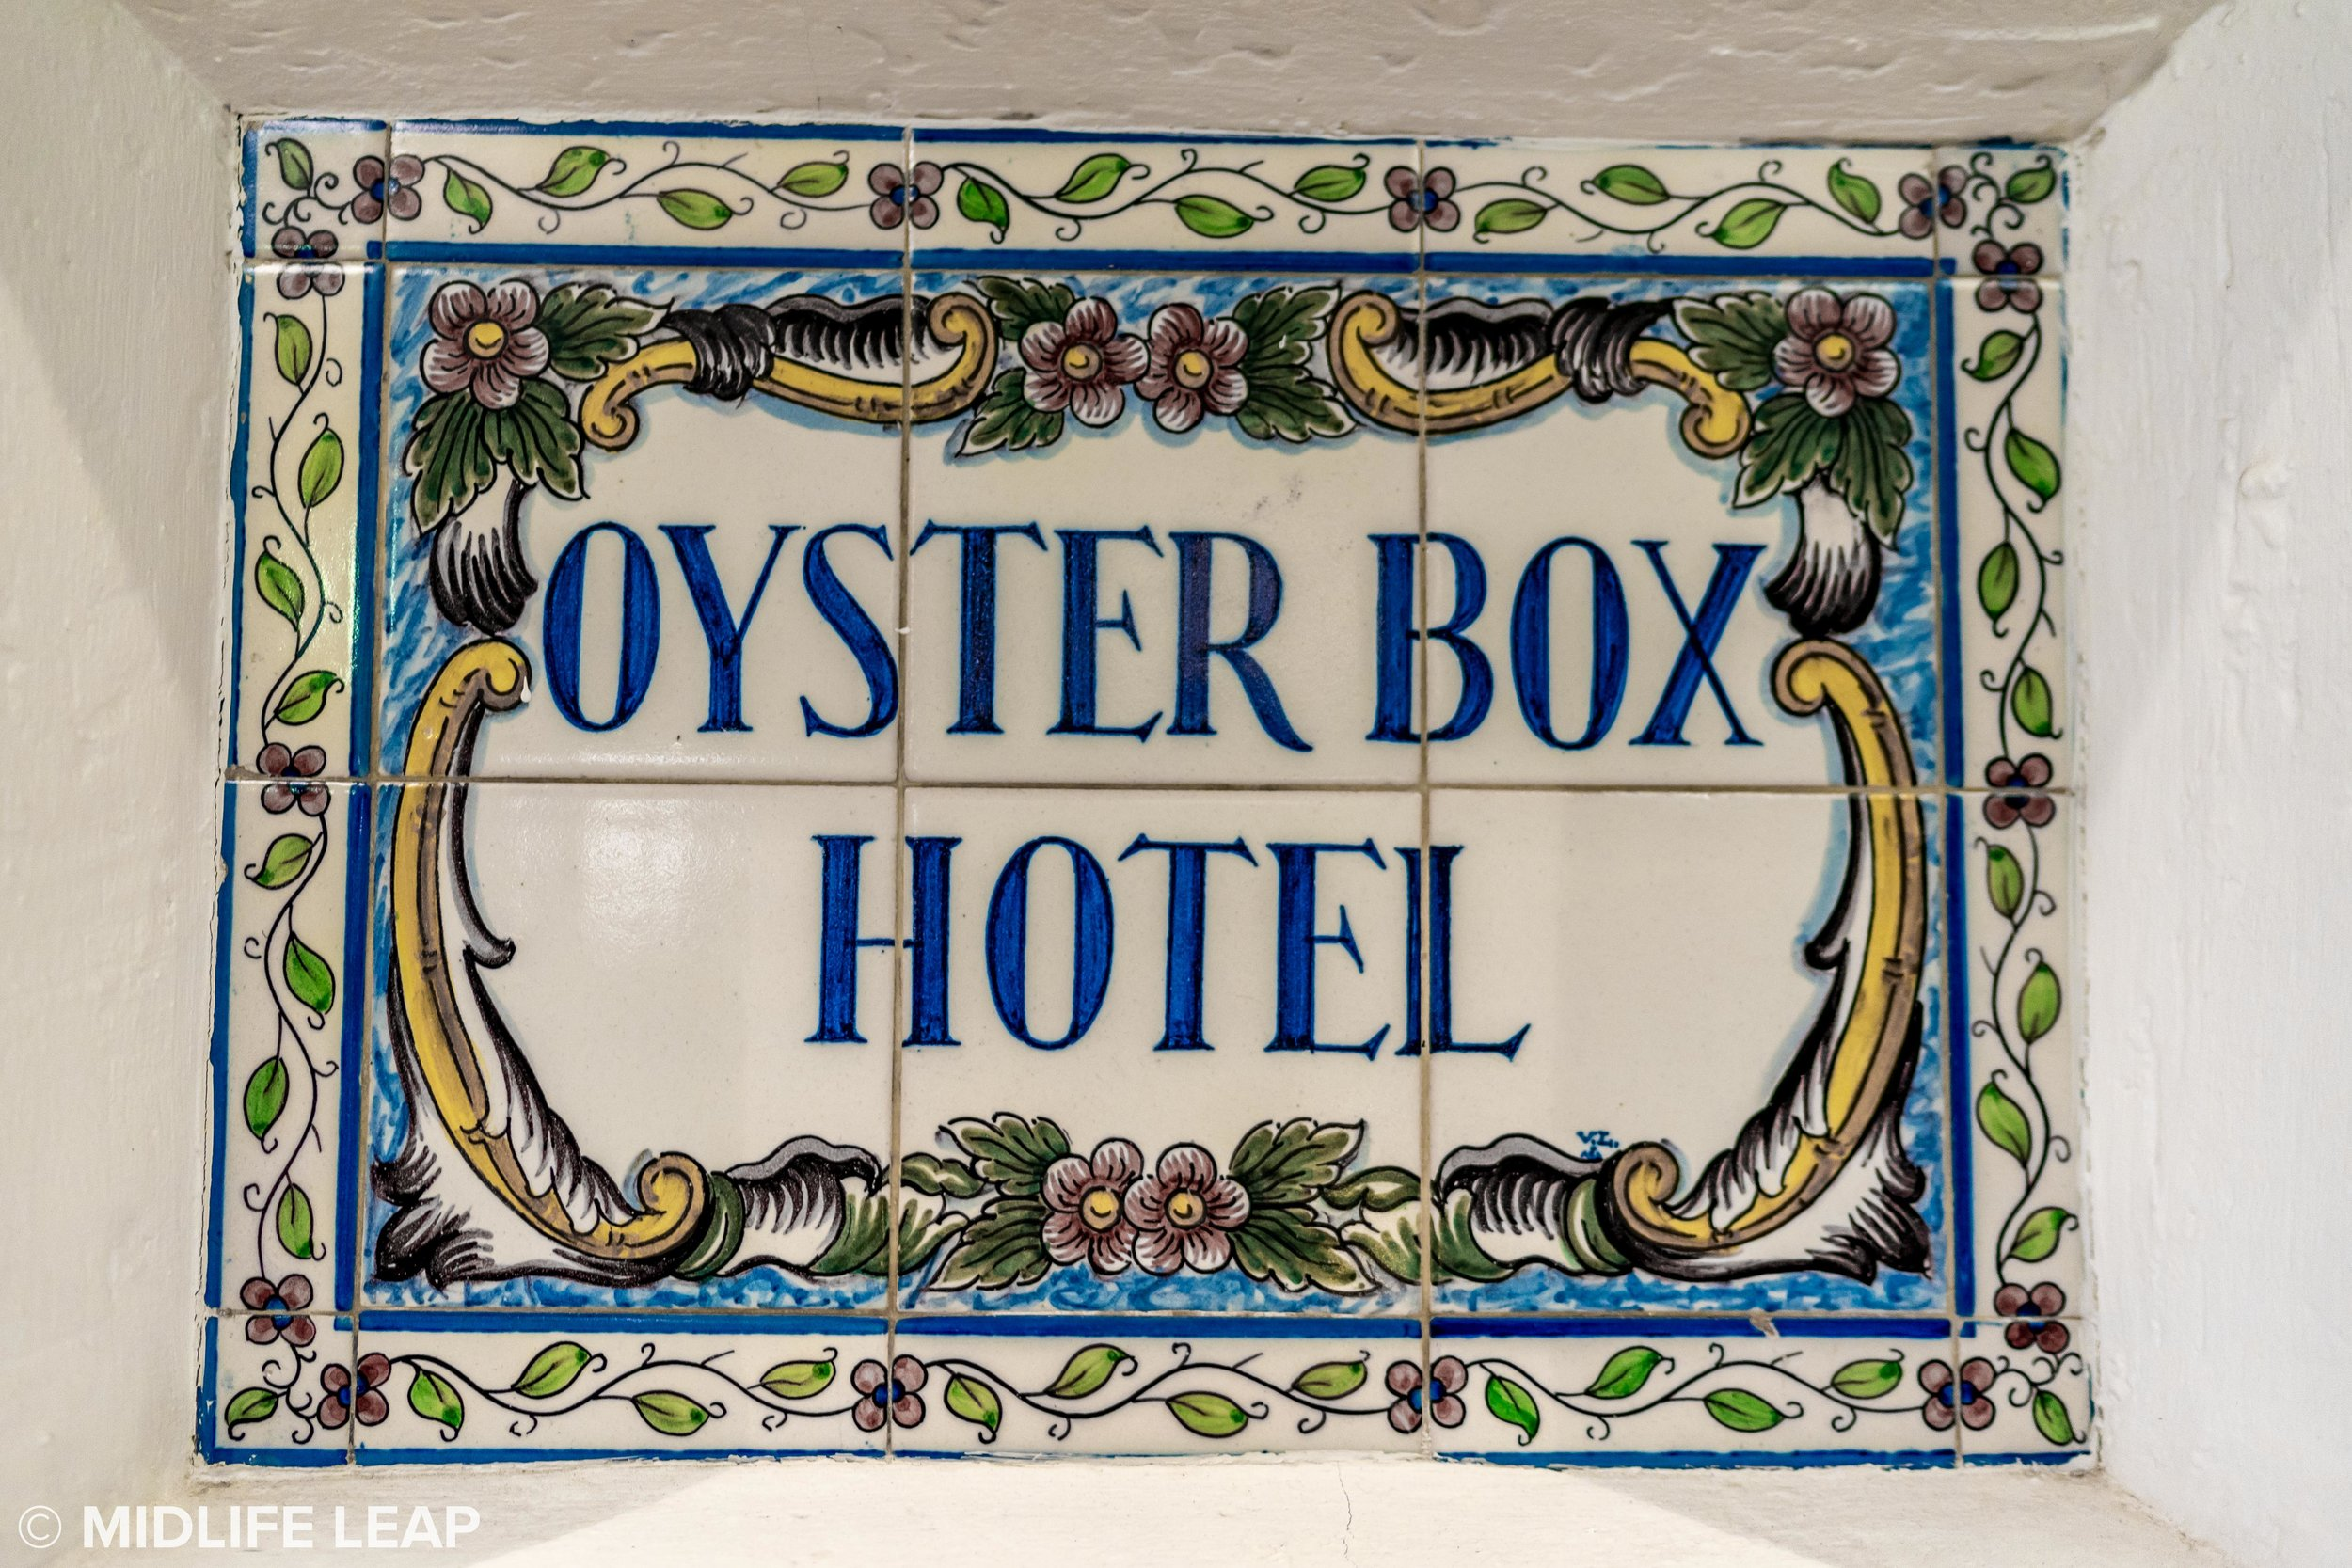 Some of the original hand painted tiles of The Oyster Box Hotel